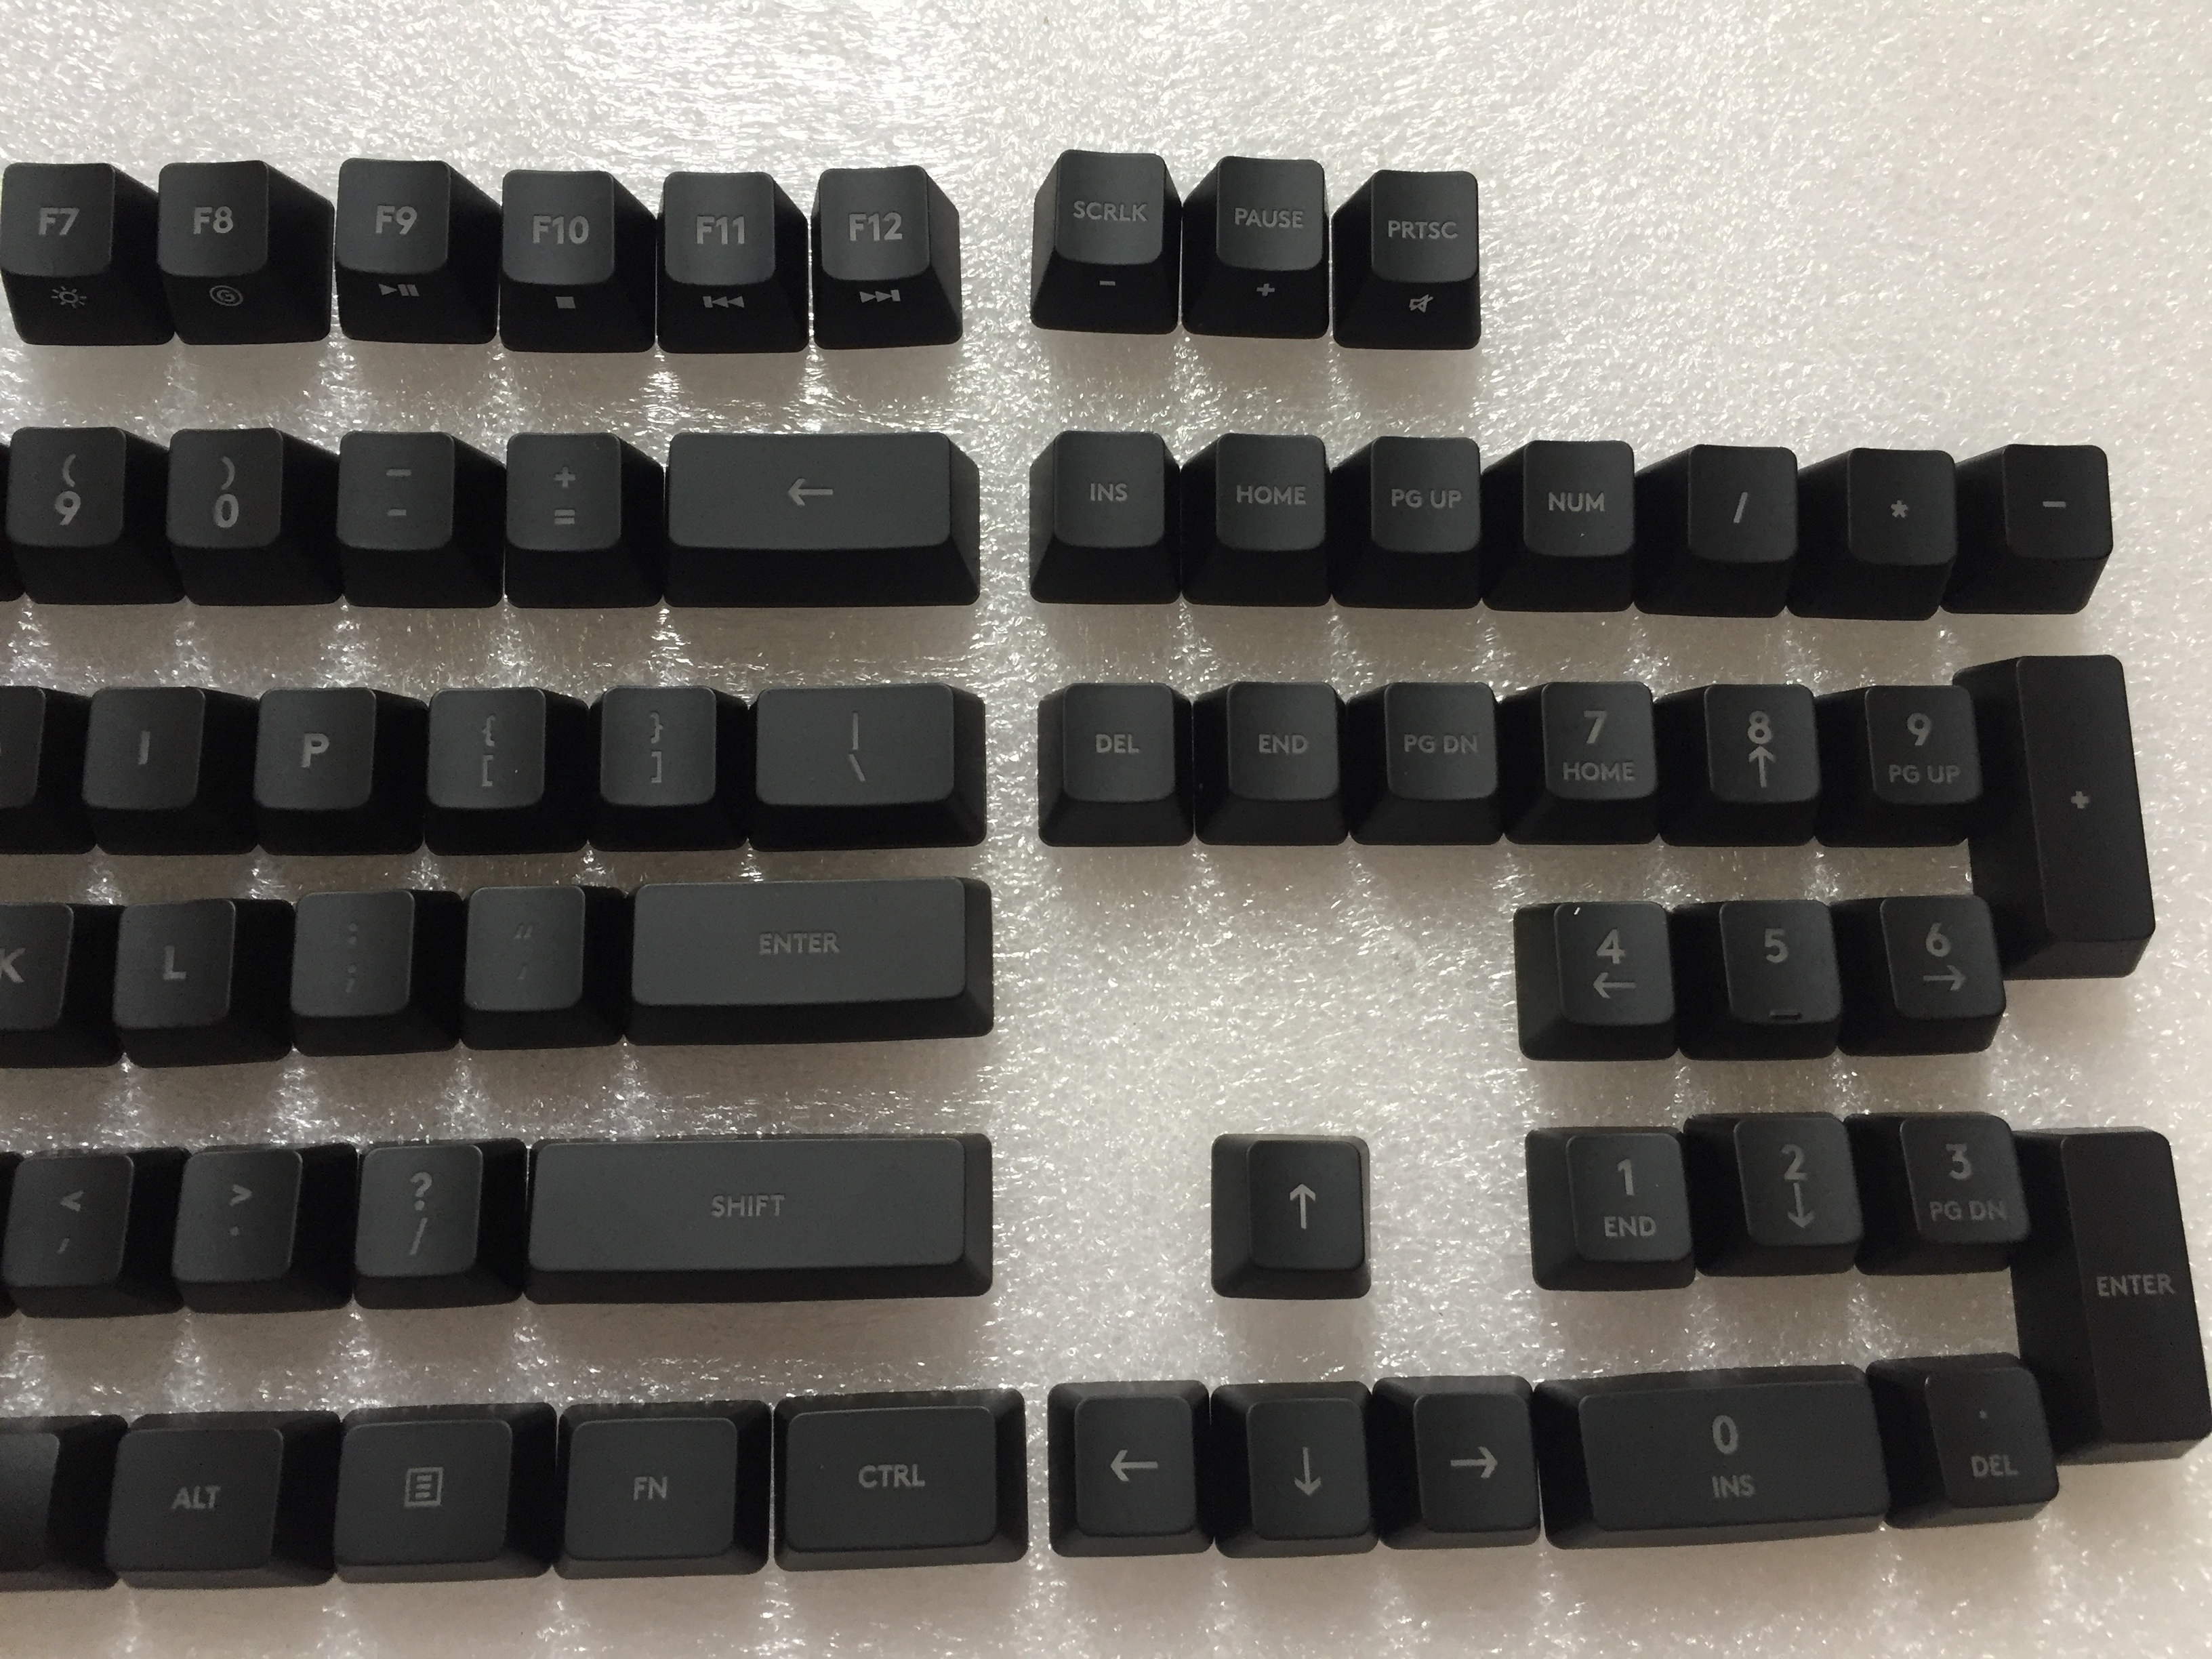 1 Piece Original ESC Ctrl Alt Space Key Cap For Logitech G512 Keyboard With Romer-g Switch Bracket Also In Stock